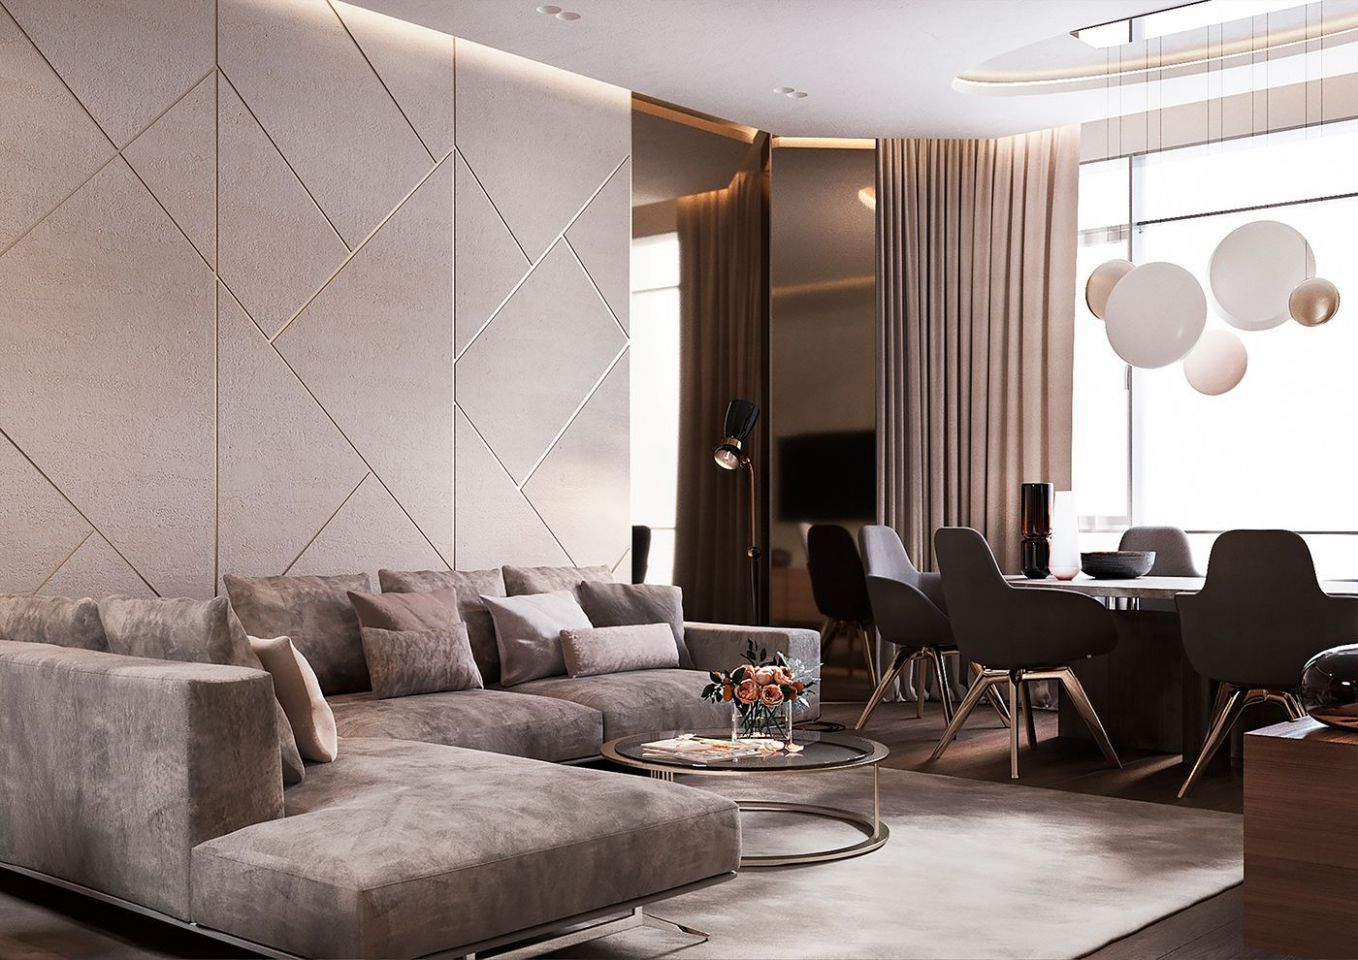 Luxury Apartment Interior Design Ideas with the Right Concept ..